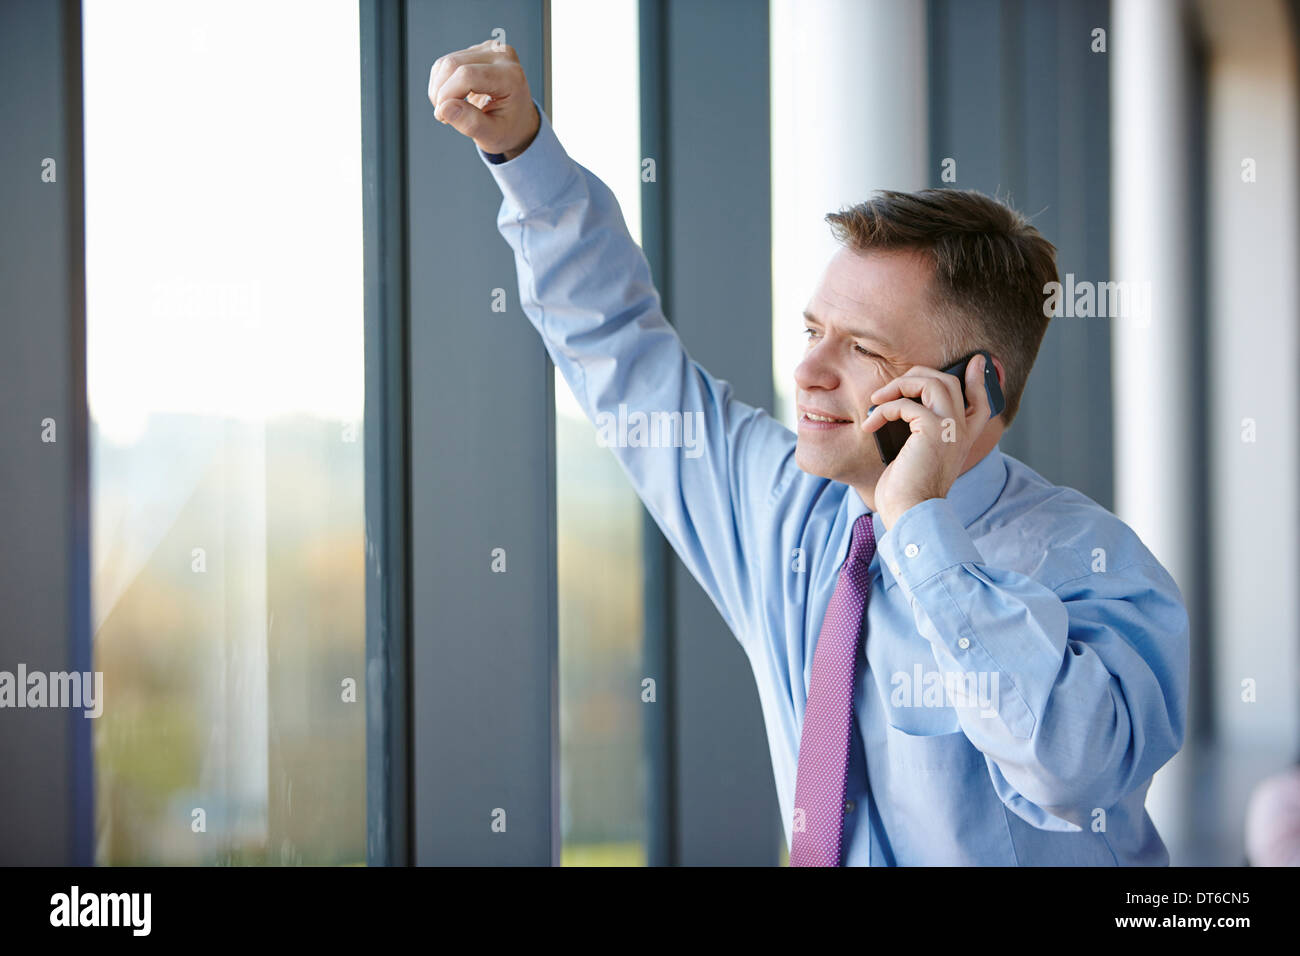 Businessman on cell phone - Stock Image